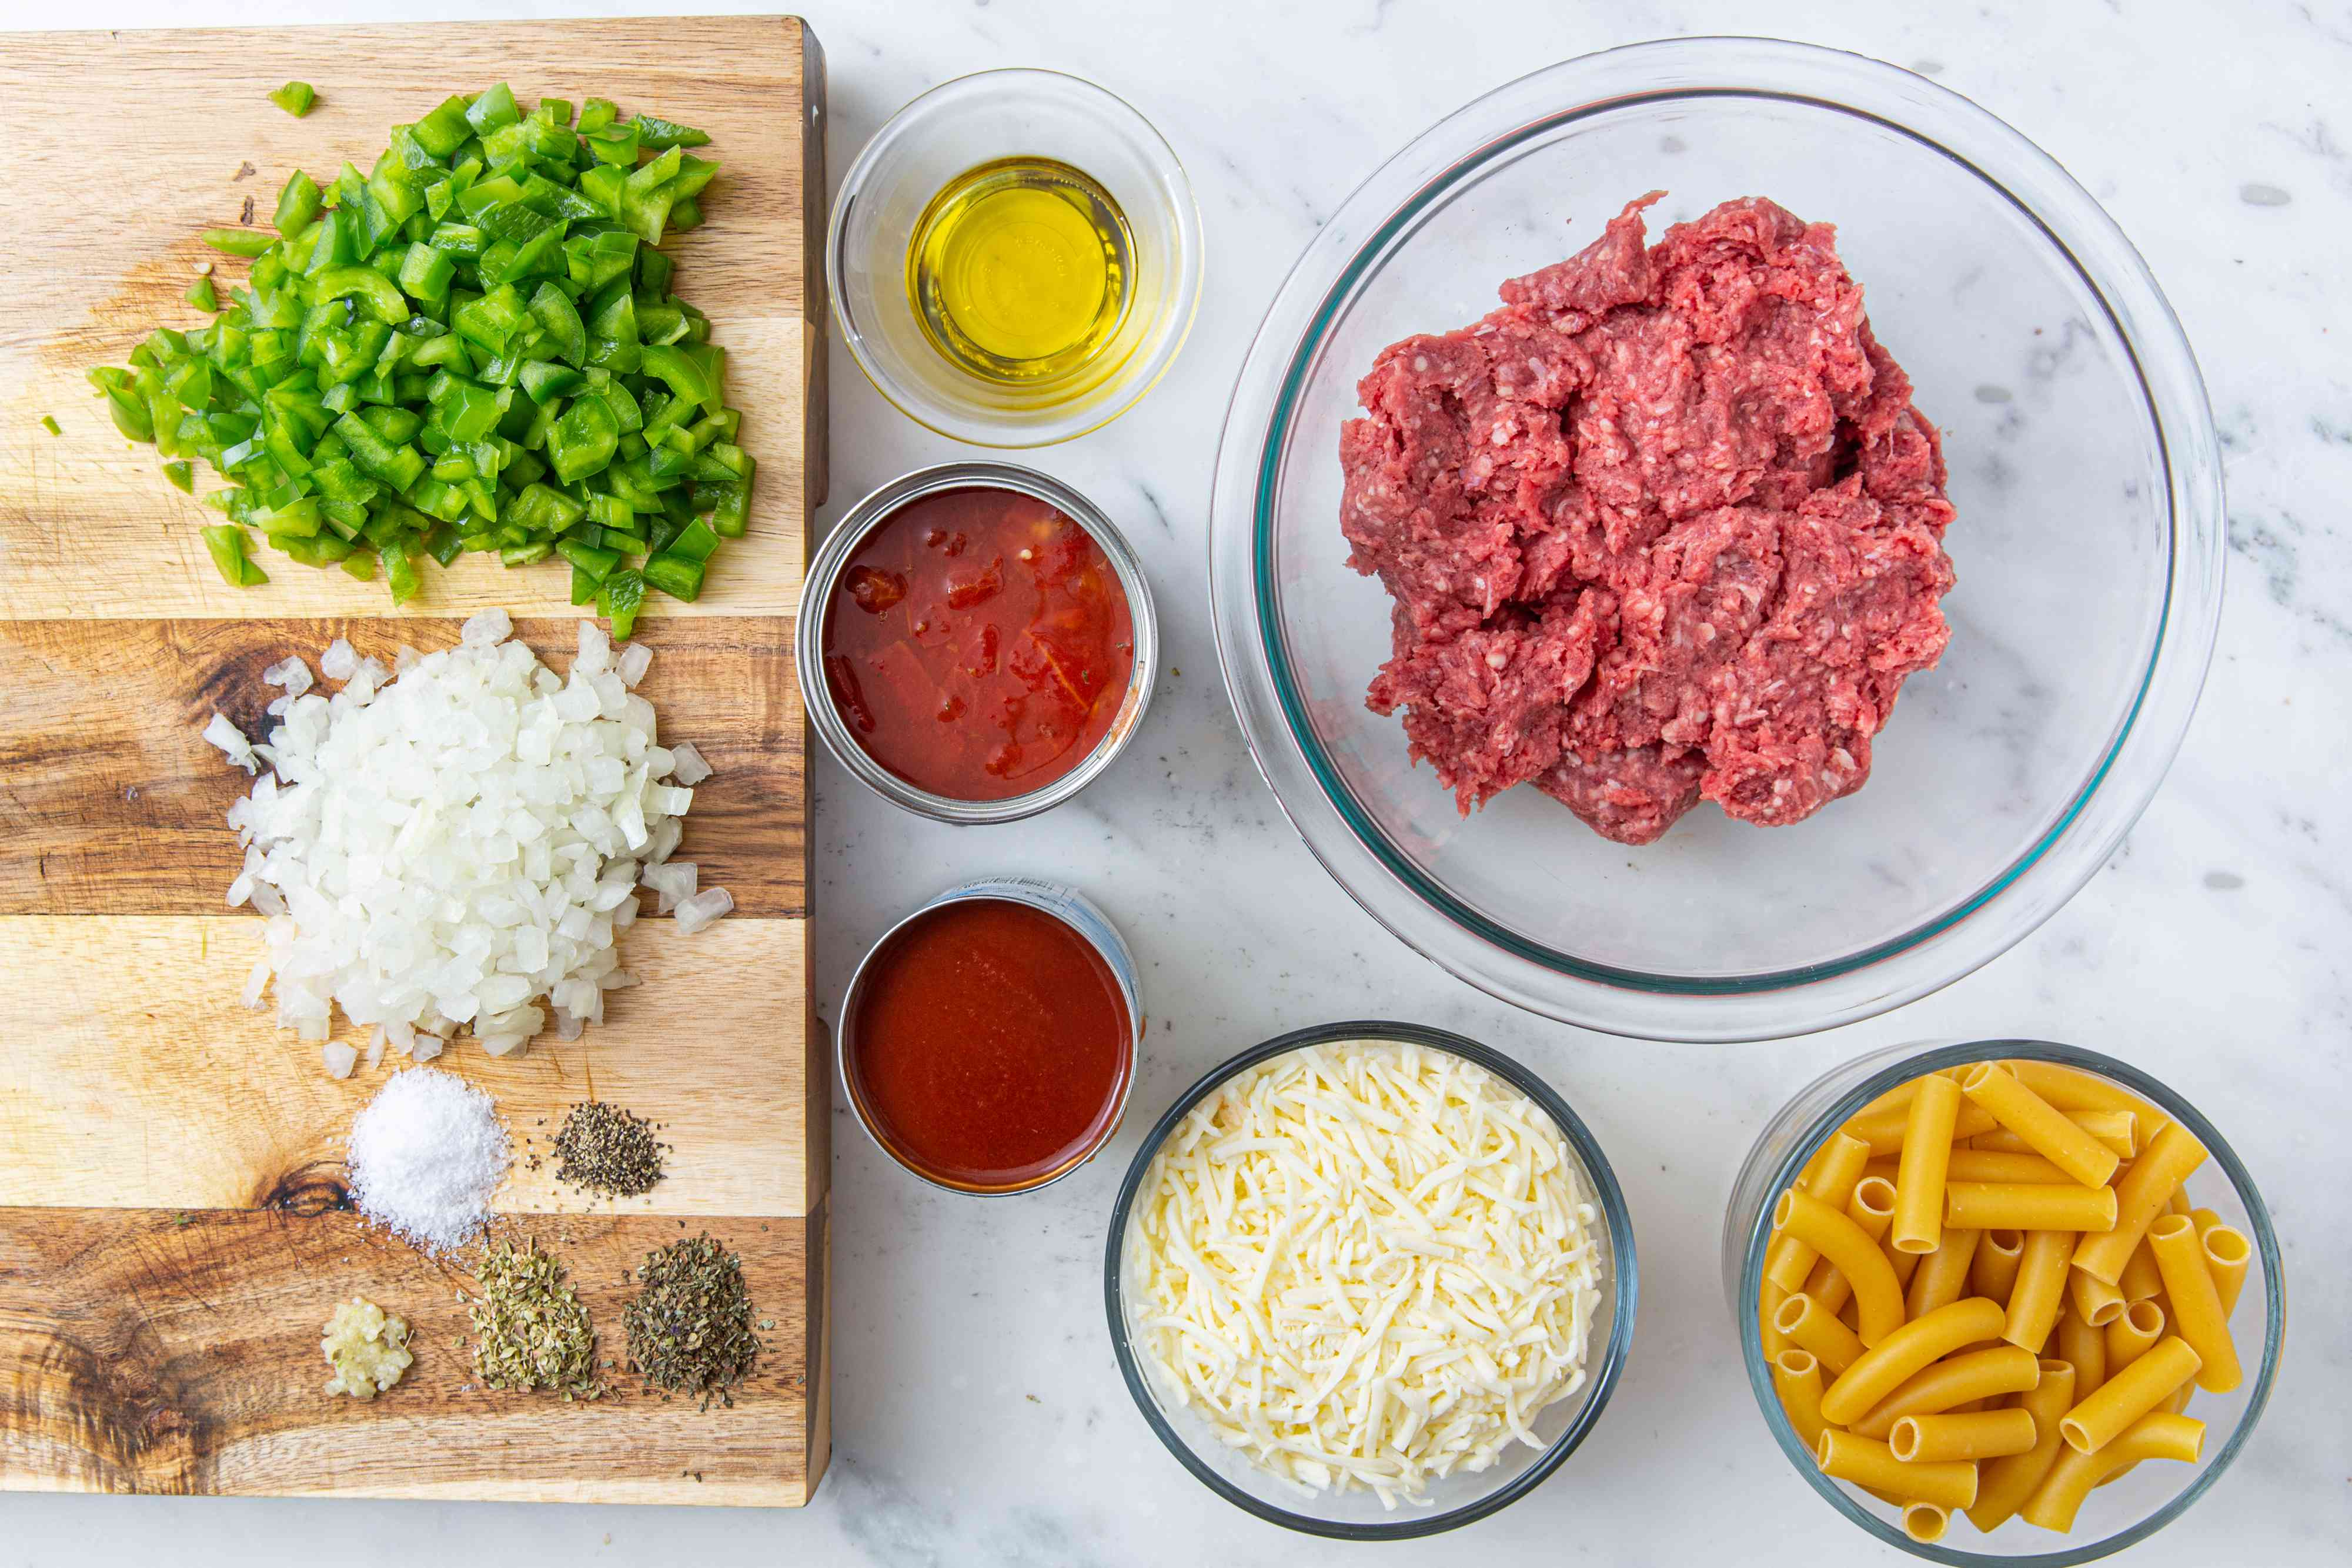 Easy Baked Ziti With Ground Beef and Cheese ingredients